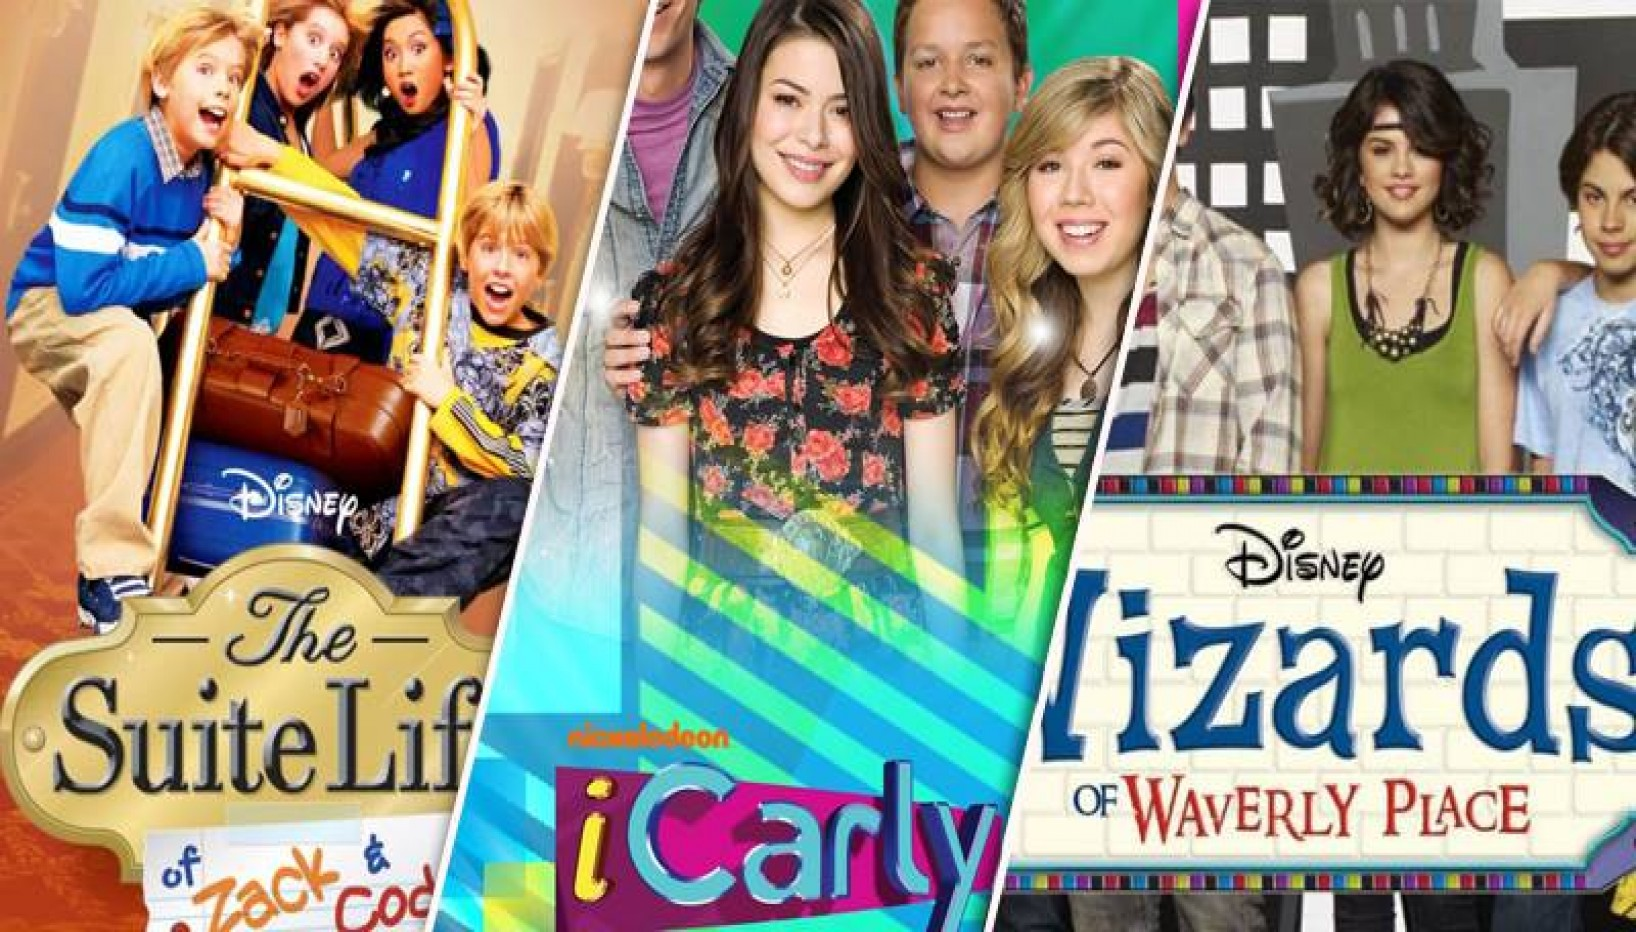 How Well Do You Remember 2000s TV Shows? Take This Quiz To Find Out!